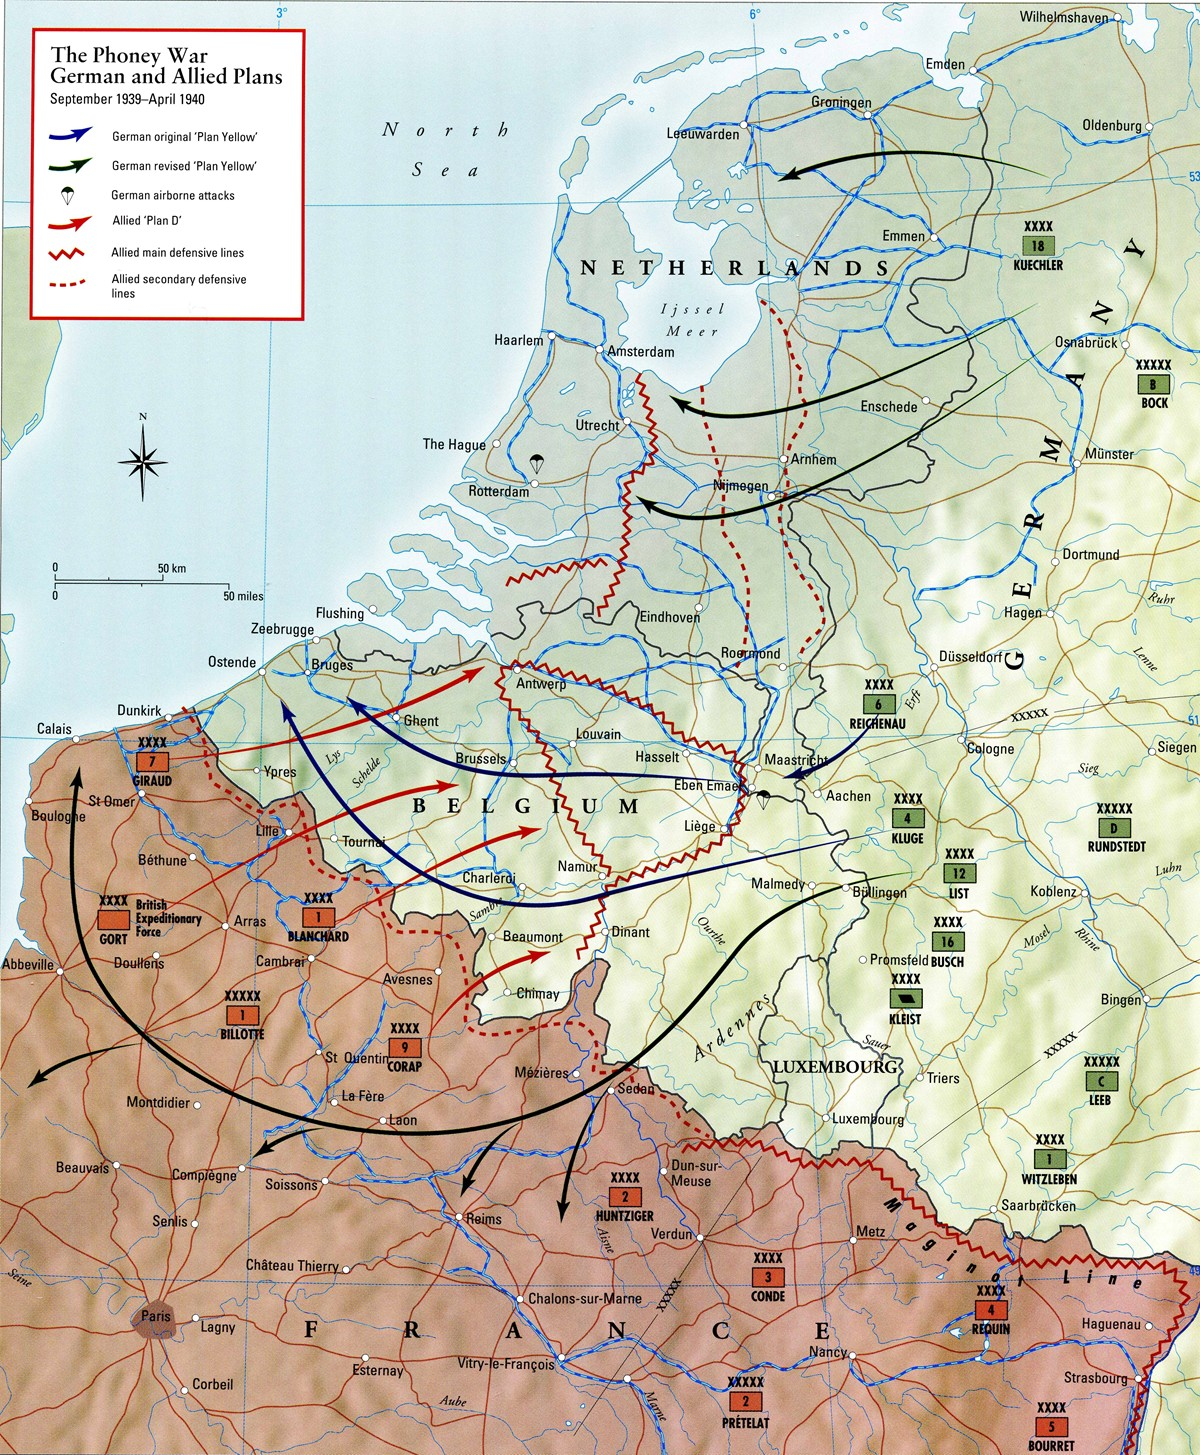 maginot line map with Maps on Vol124lw besides USA E Riviera 27 additionally La Ligne Maginot in addition Maps likewise Ww1 map ardennes 2ebr.